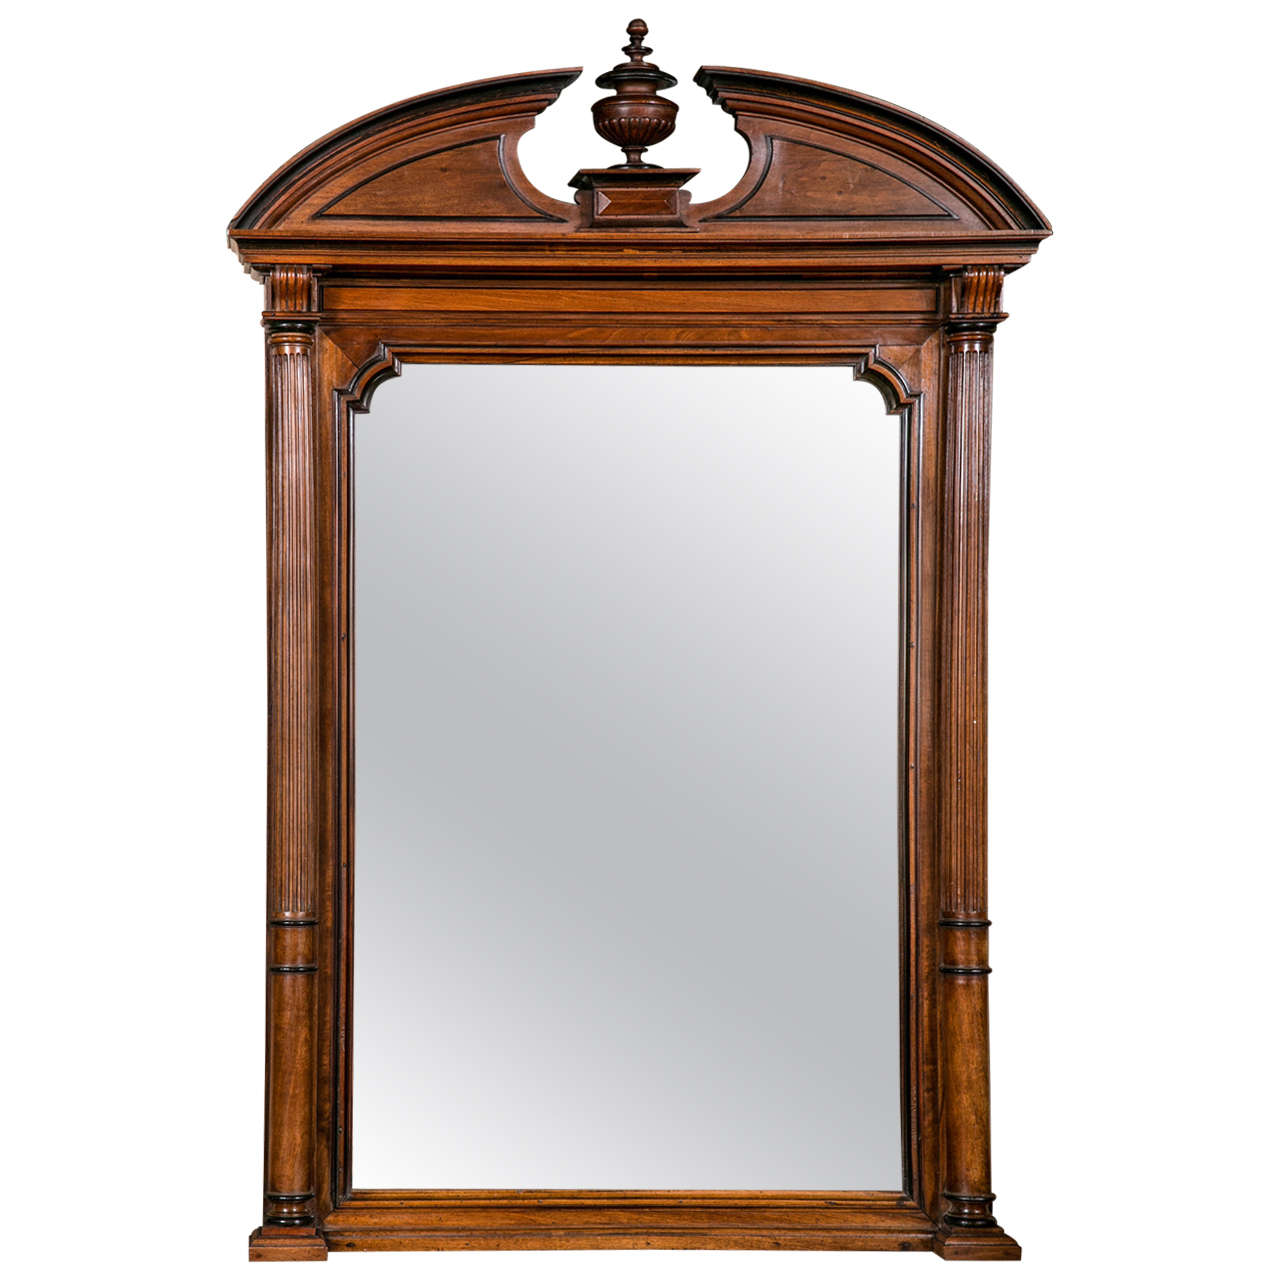 Mahogany Mirror with Molded Pediment